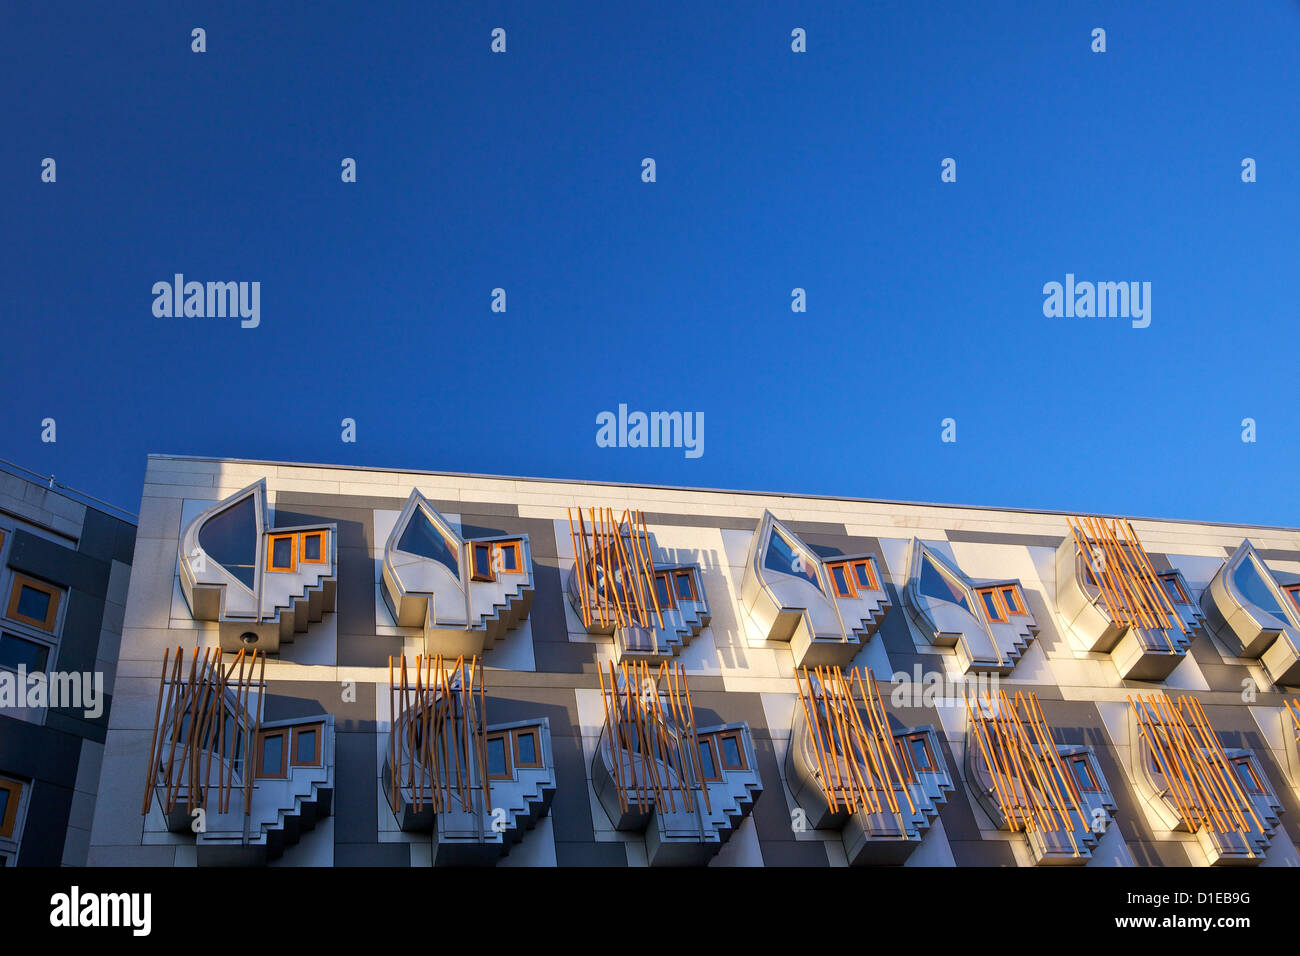 Exterior of New Scottish Parliament building, architect Enric Miralles, Holyrood, Edinburgh, Scotland, United Kingdom, - Stock Image